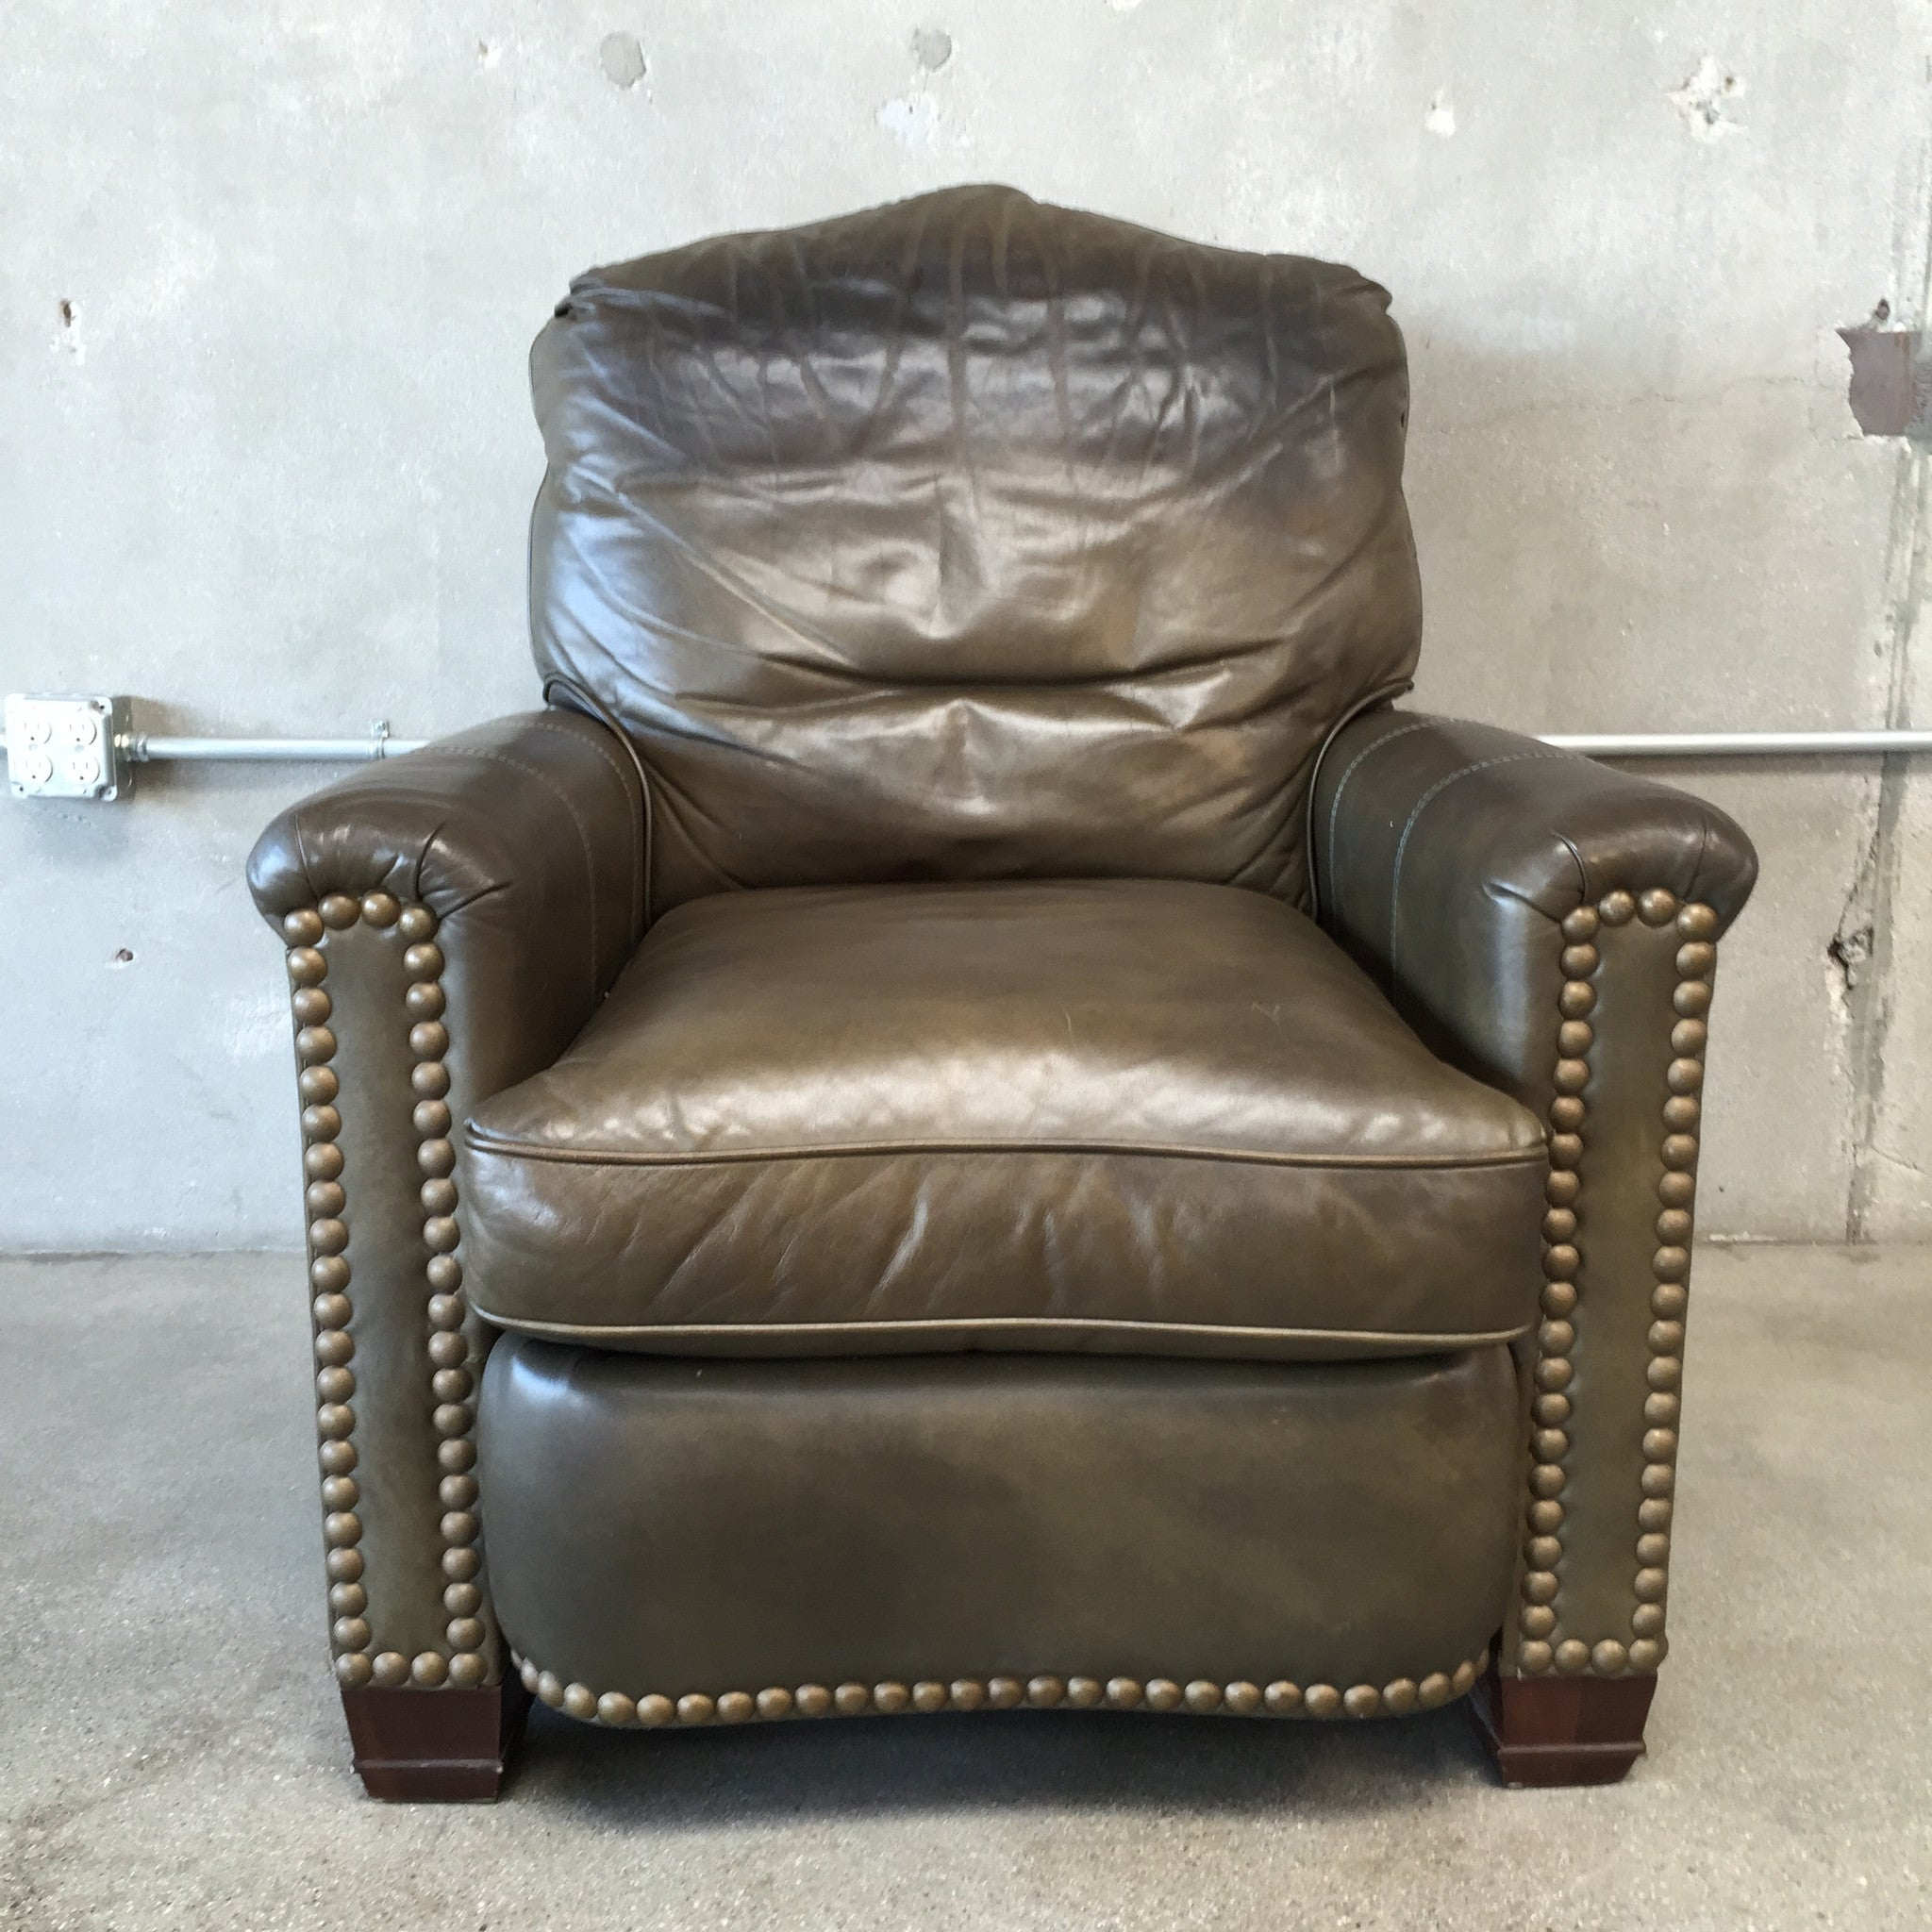 & Dark Green Chair / Leather Recliner with Large Nail Studs ... islam-shia.org